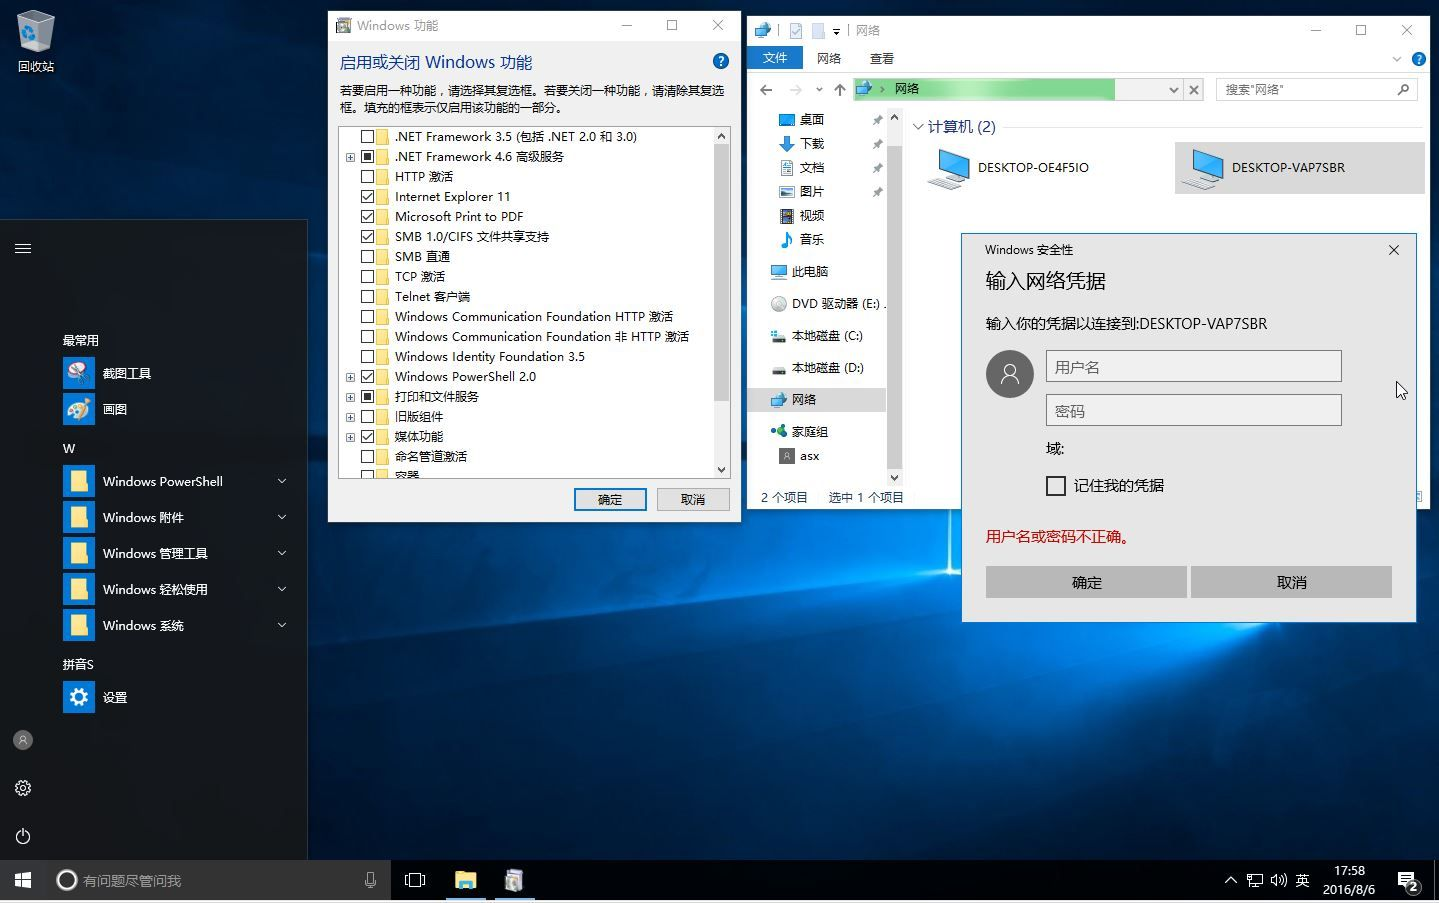 Windows 10 Enterprise 14393.51 x86-x64 zh-CN LITE 05